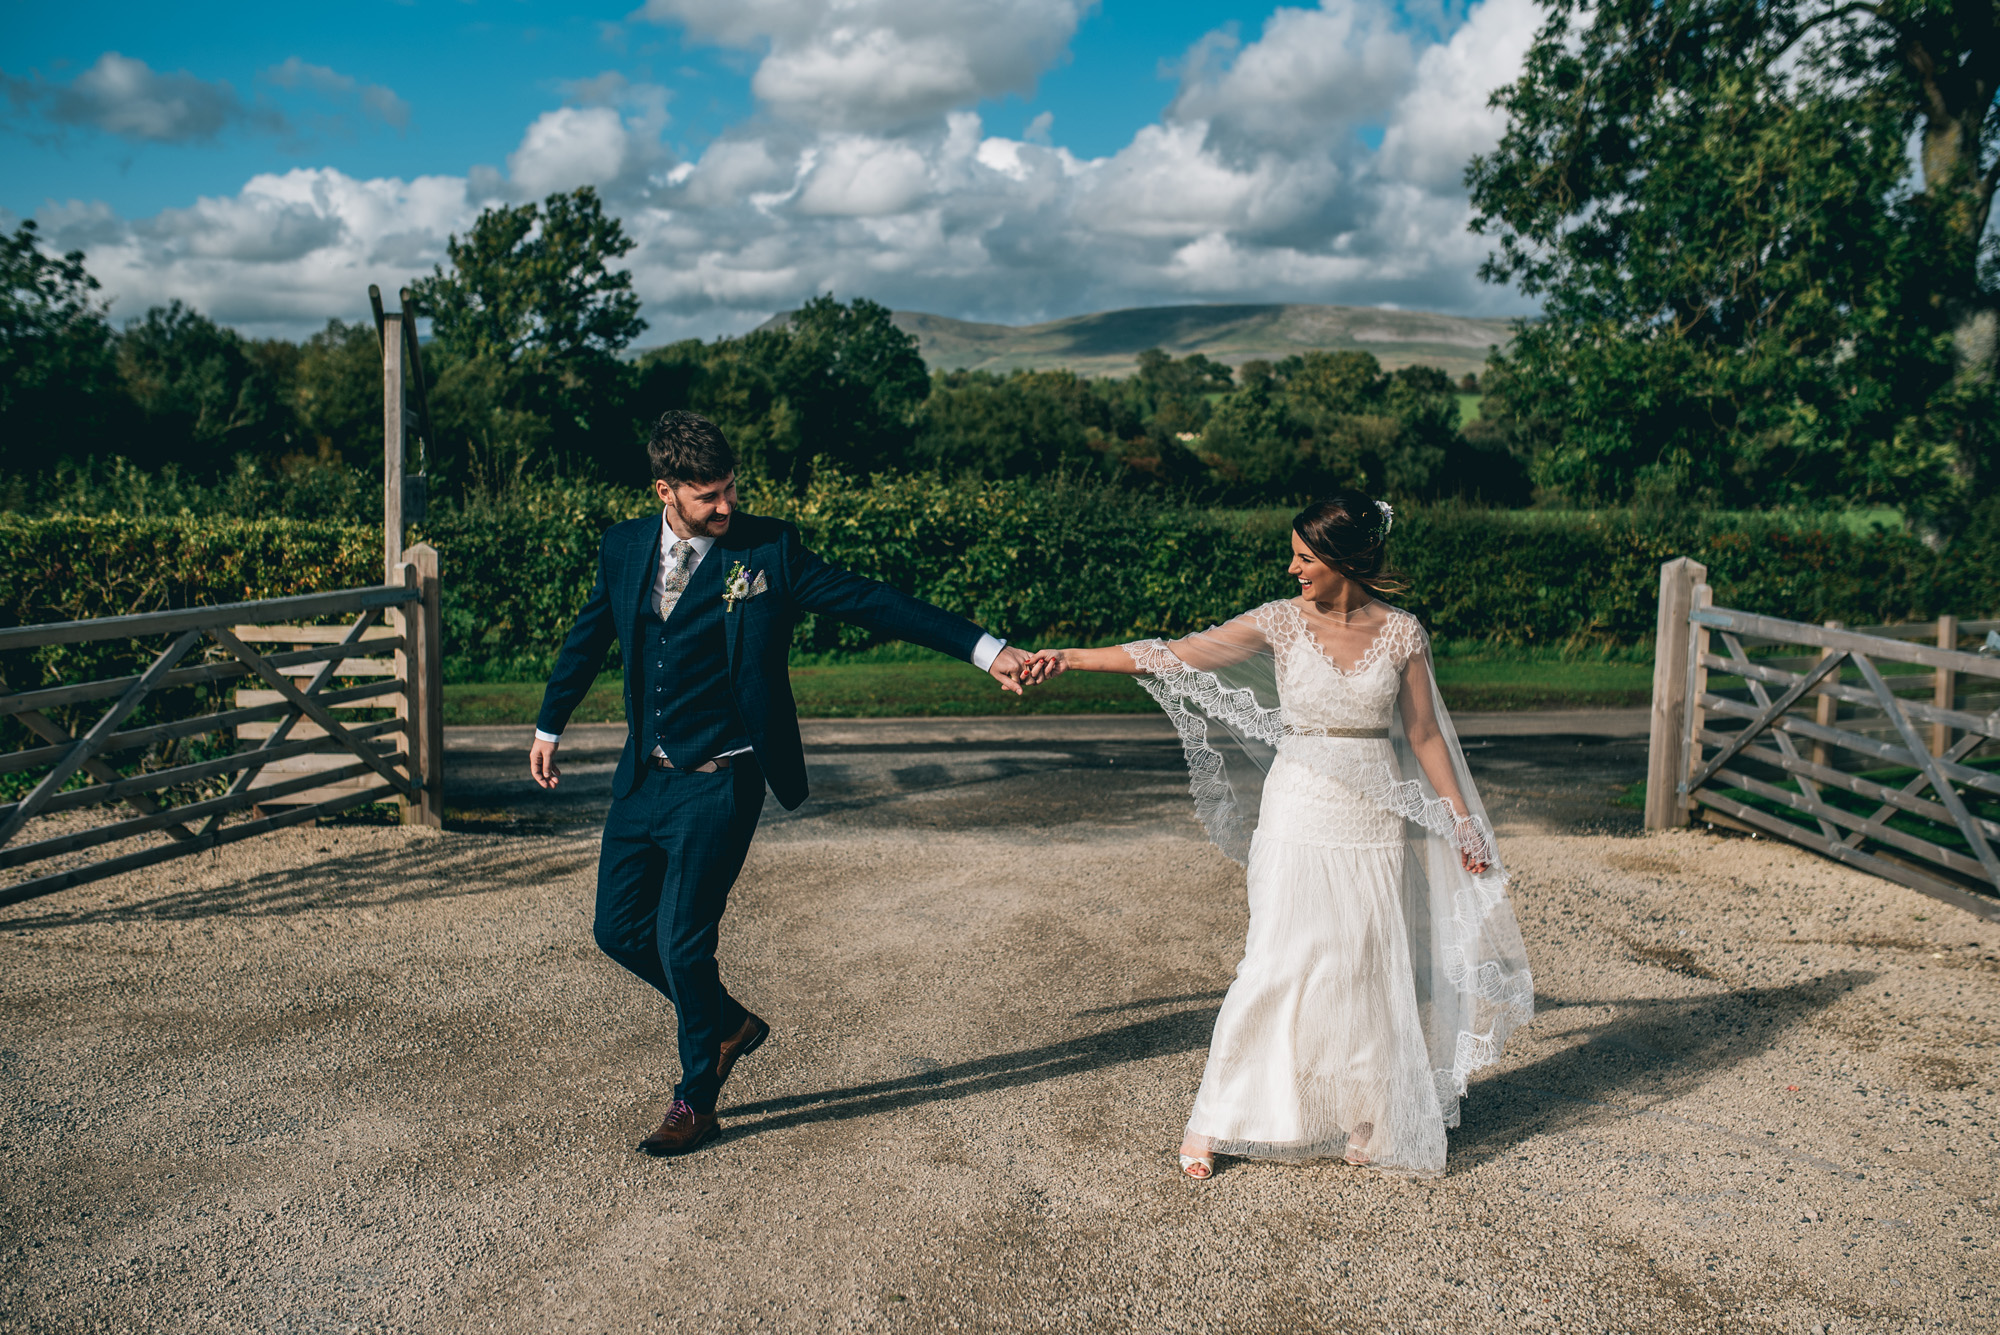 Kate-Beaumont-Sheffield-Lucy-Bohemian-Lace-Dress-Barn-Wedding-Cumbria-36.jpg